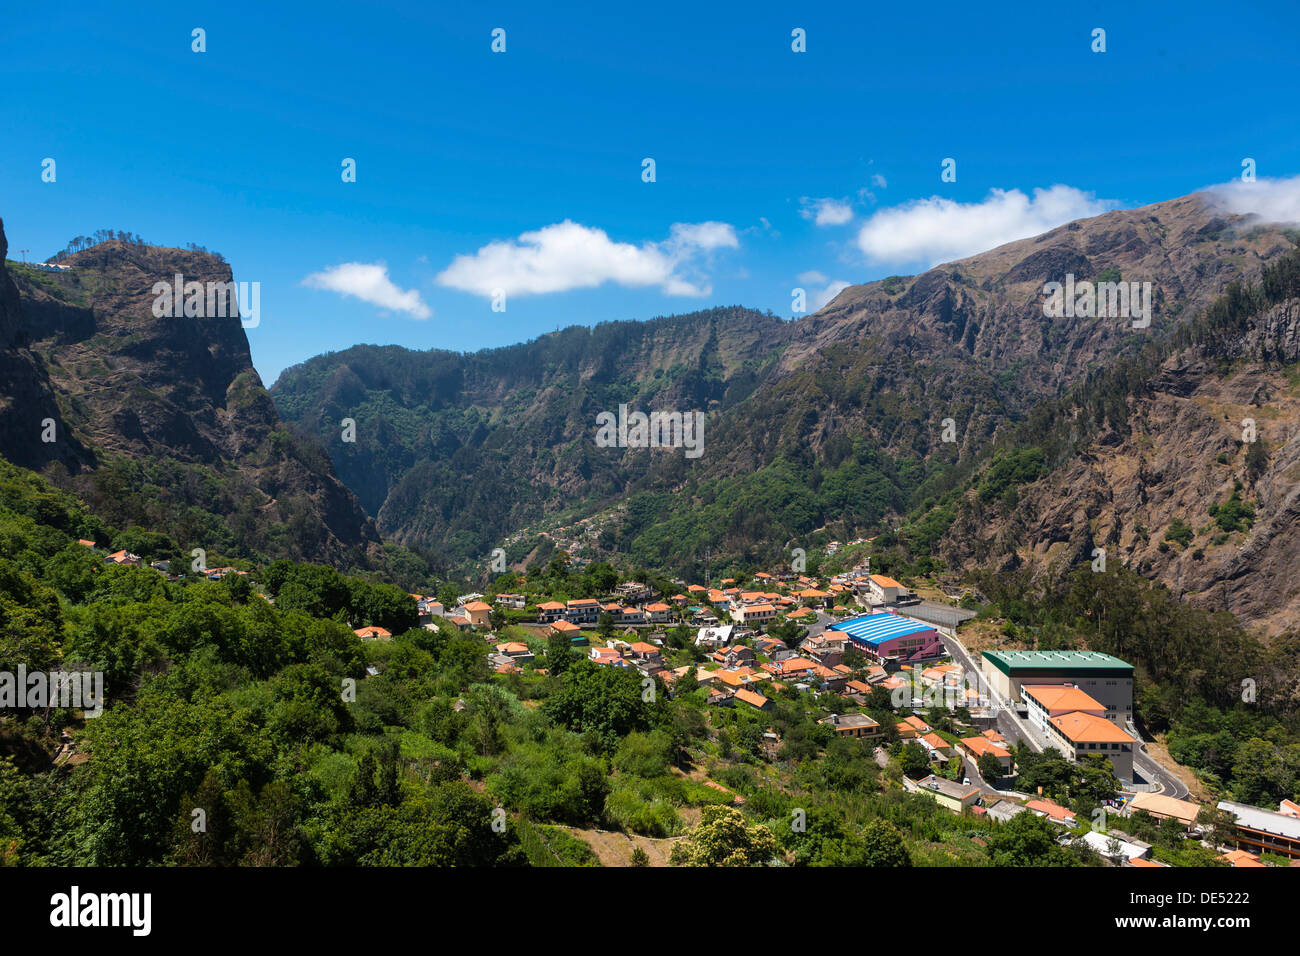 Village of Curral das Freiras in the mountains of Pico dos Barcelos, with its deep ravines, Funchal Pico dos Barcelos - Stock Image